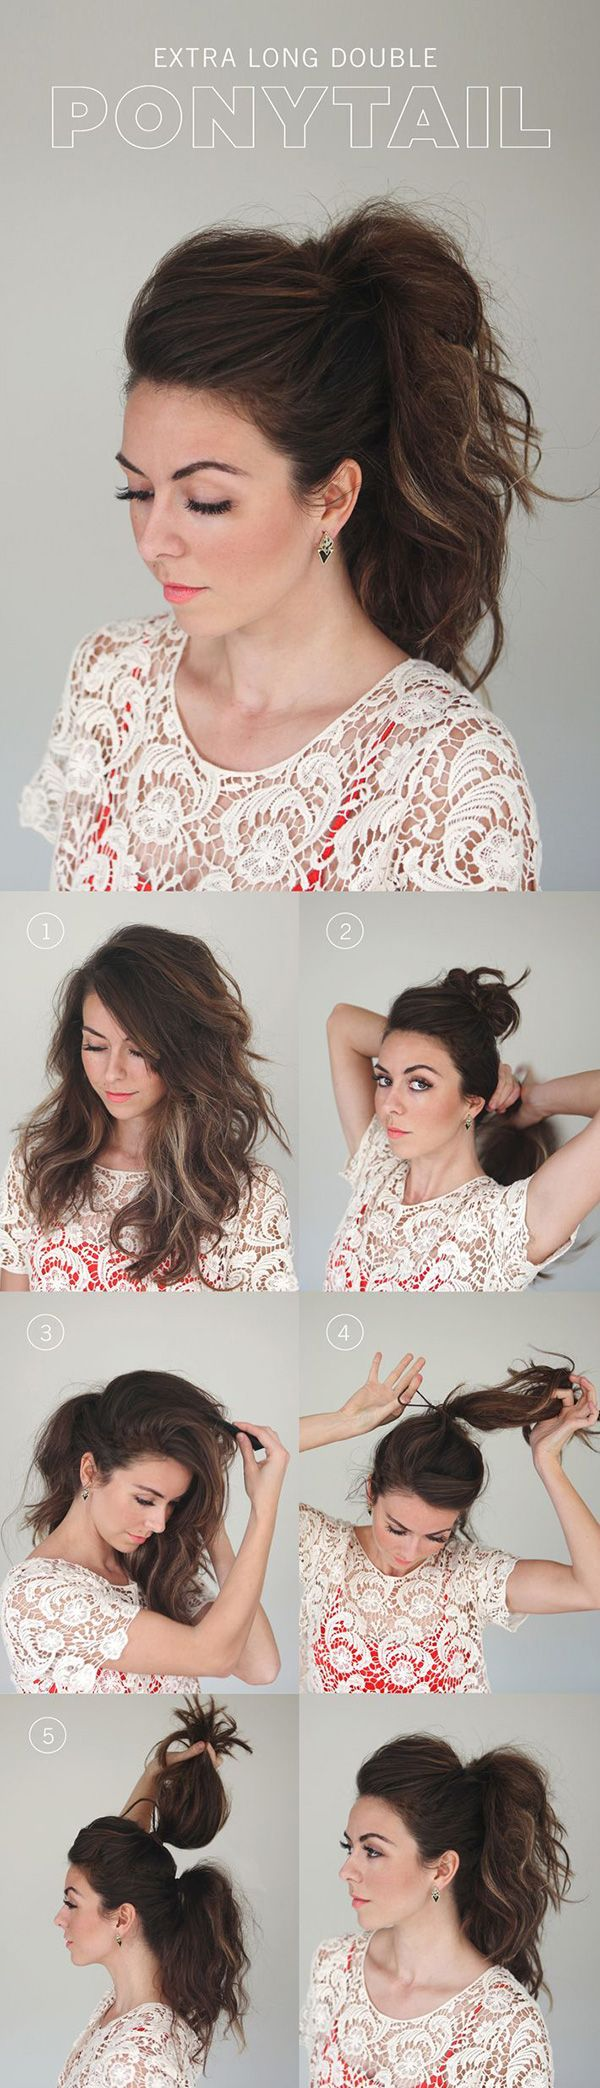 Voluminous hairstyles for long hair - 15 Hair Hacks And Tutorials On How To Make A Ponytail Look Amazing